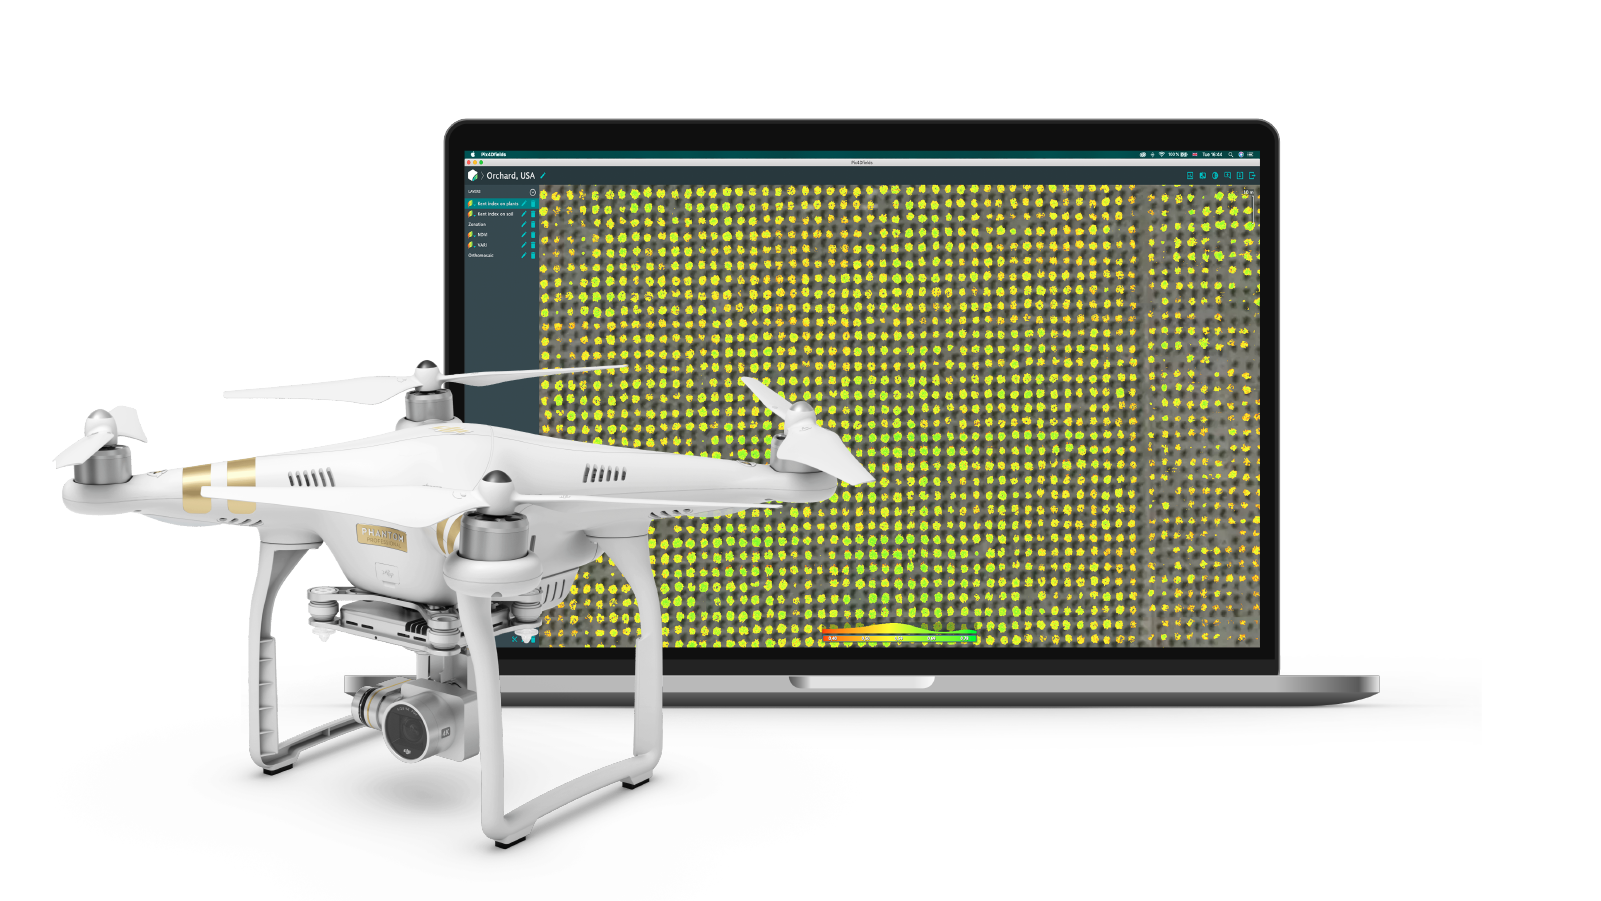 All in one agriculture mapping solution with Pix4dfields software and DJI Phantom 4 Pro drone with RGB sensor